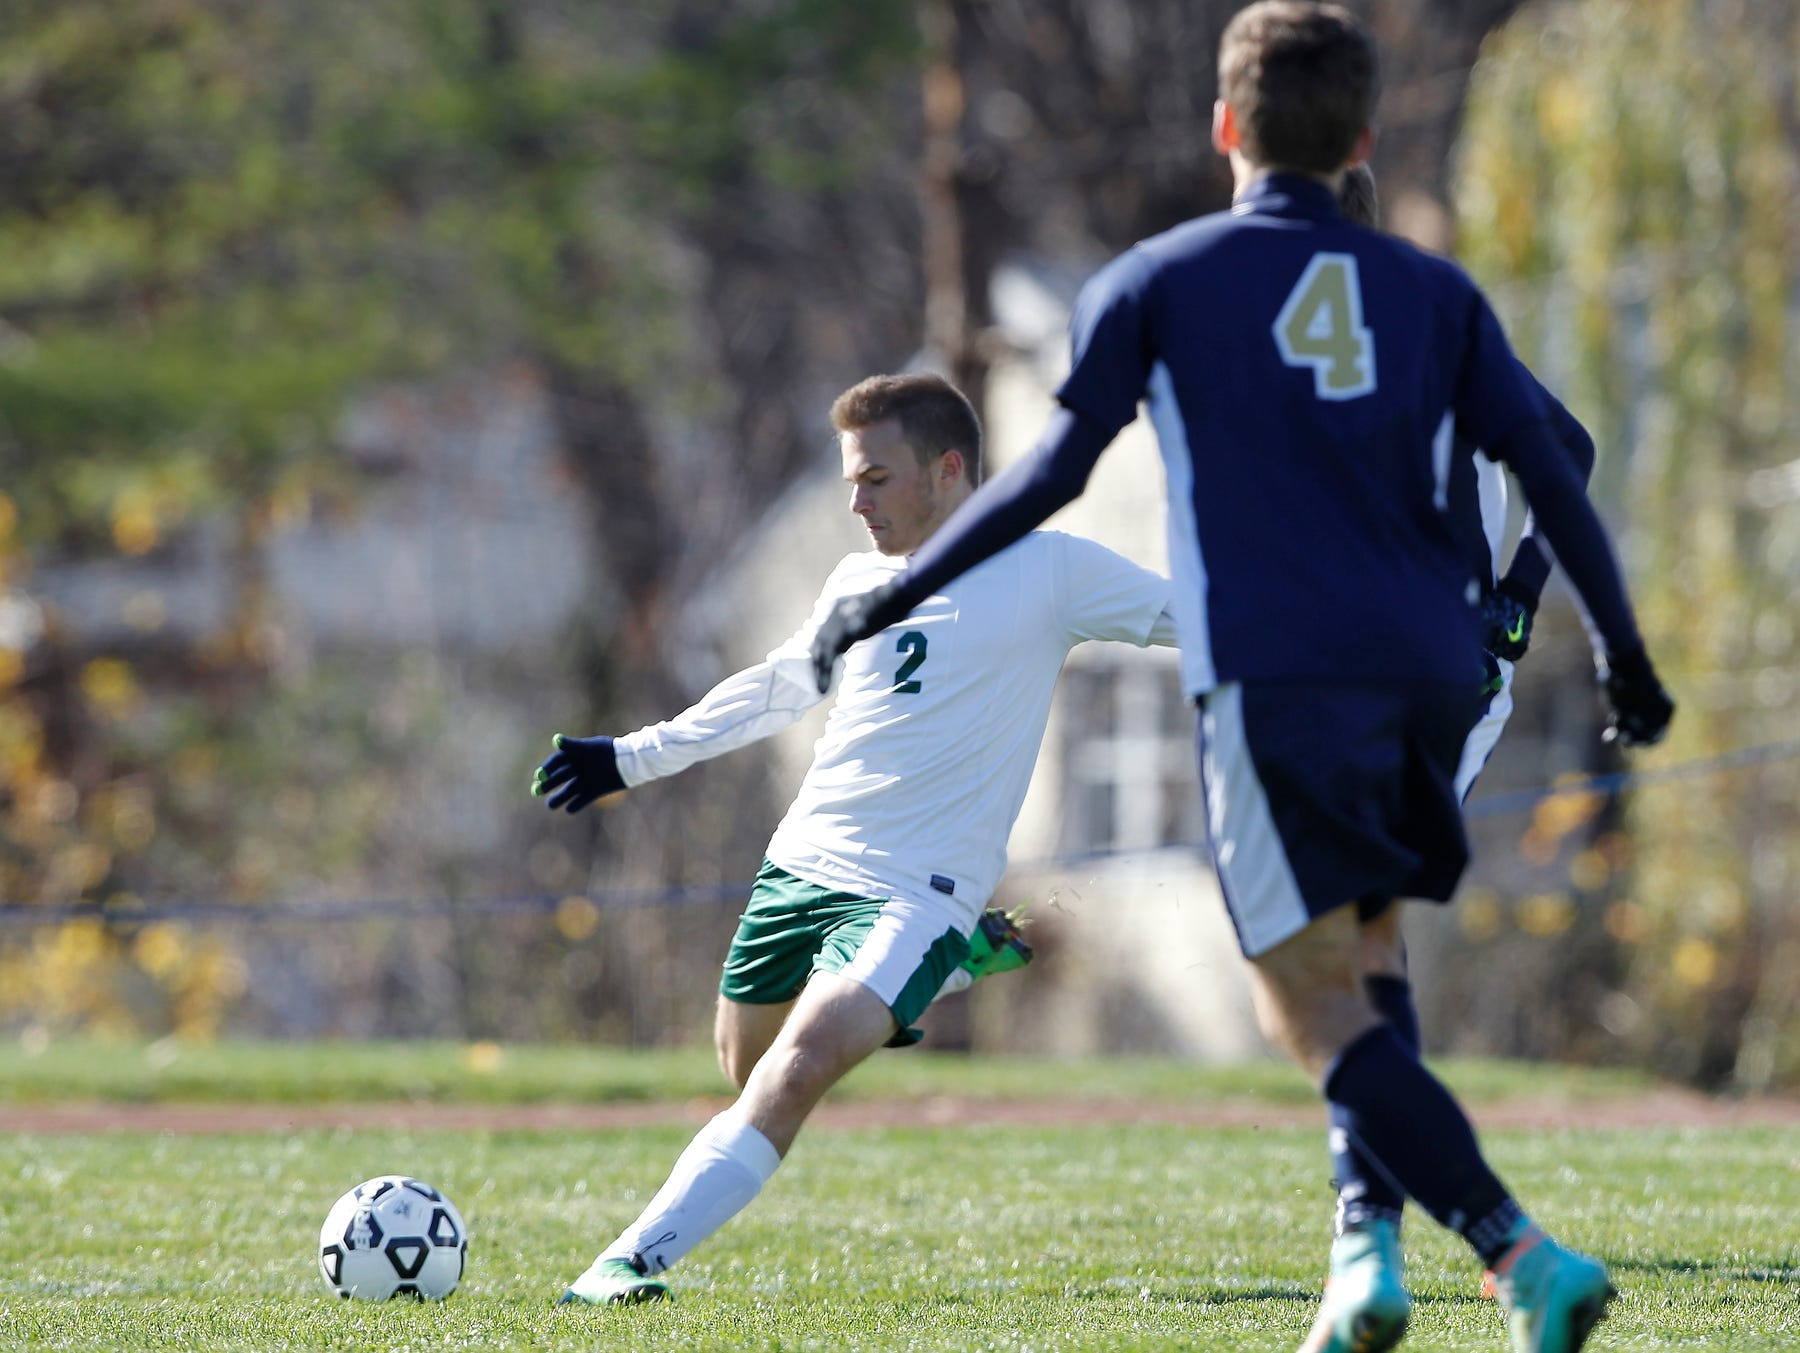 Solomon Schechter's Noam Goldberg (2) takes a shot to their only goal during their 9-1 loss to Notre Dame in the NYSPHSAA boys class C soccer final at Middletown High School on Sunday, Nov. 15, 2015.